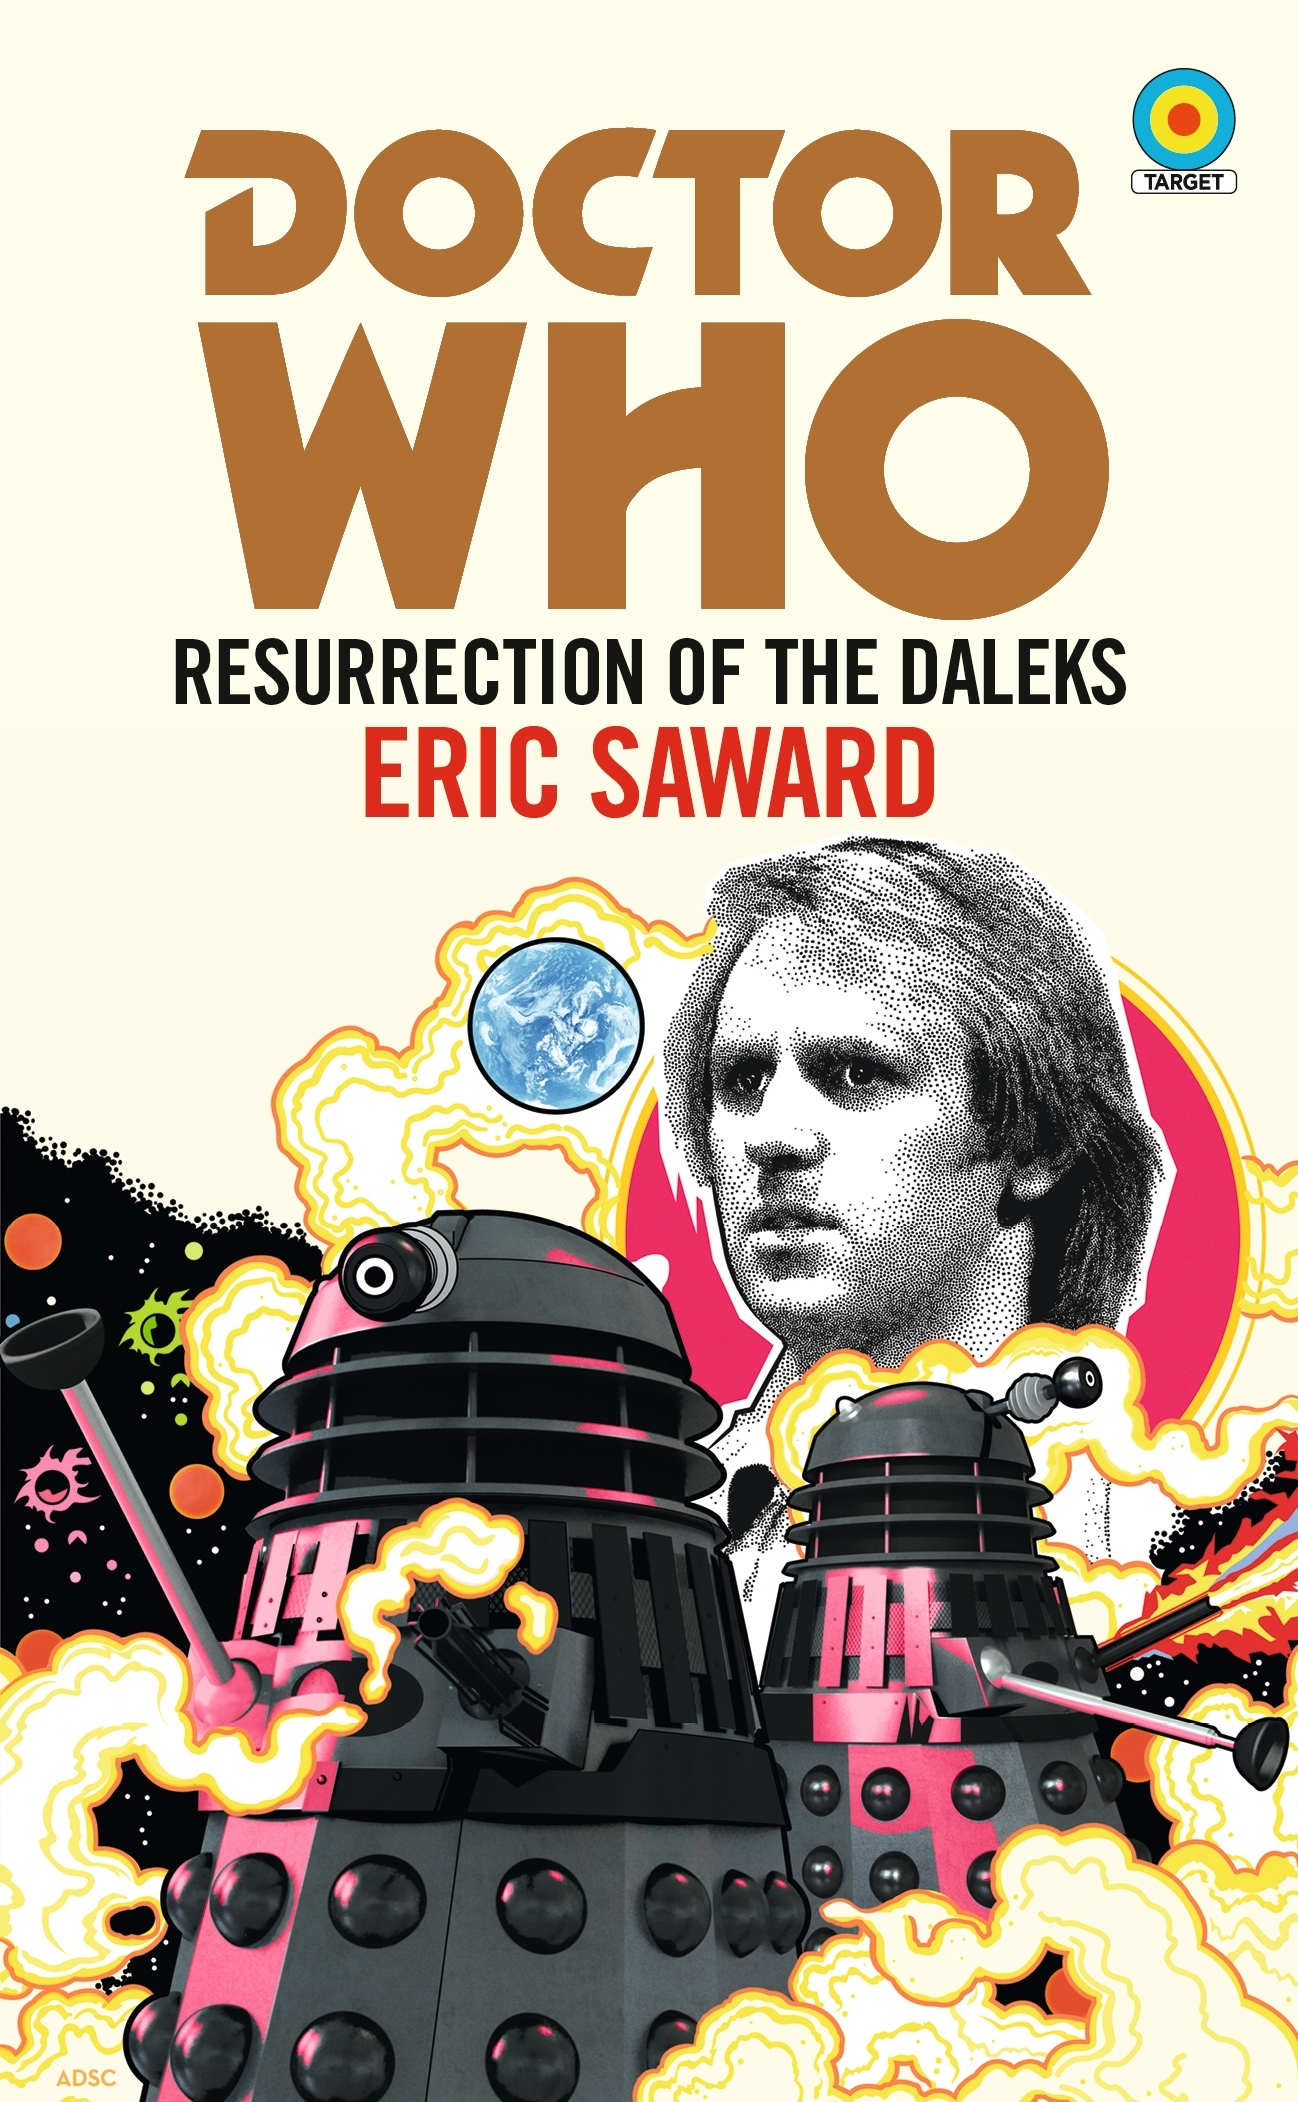 DOCTOR WHO TARGET COLLECTION RESURRECTION OF THE DALEKS